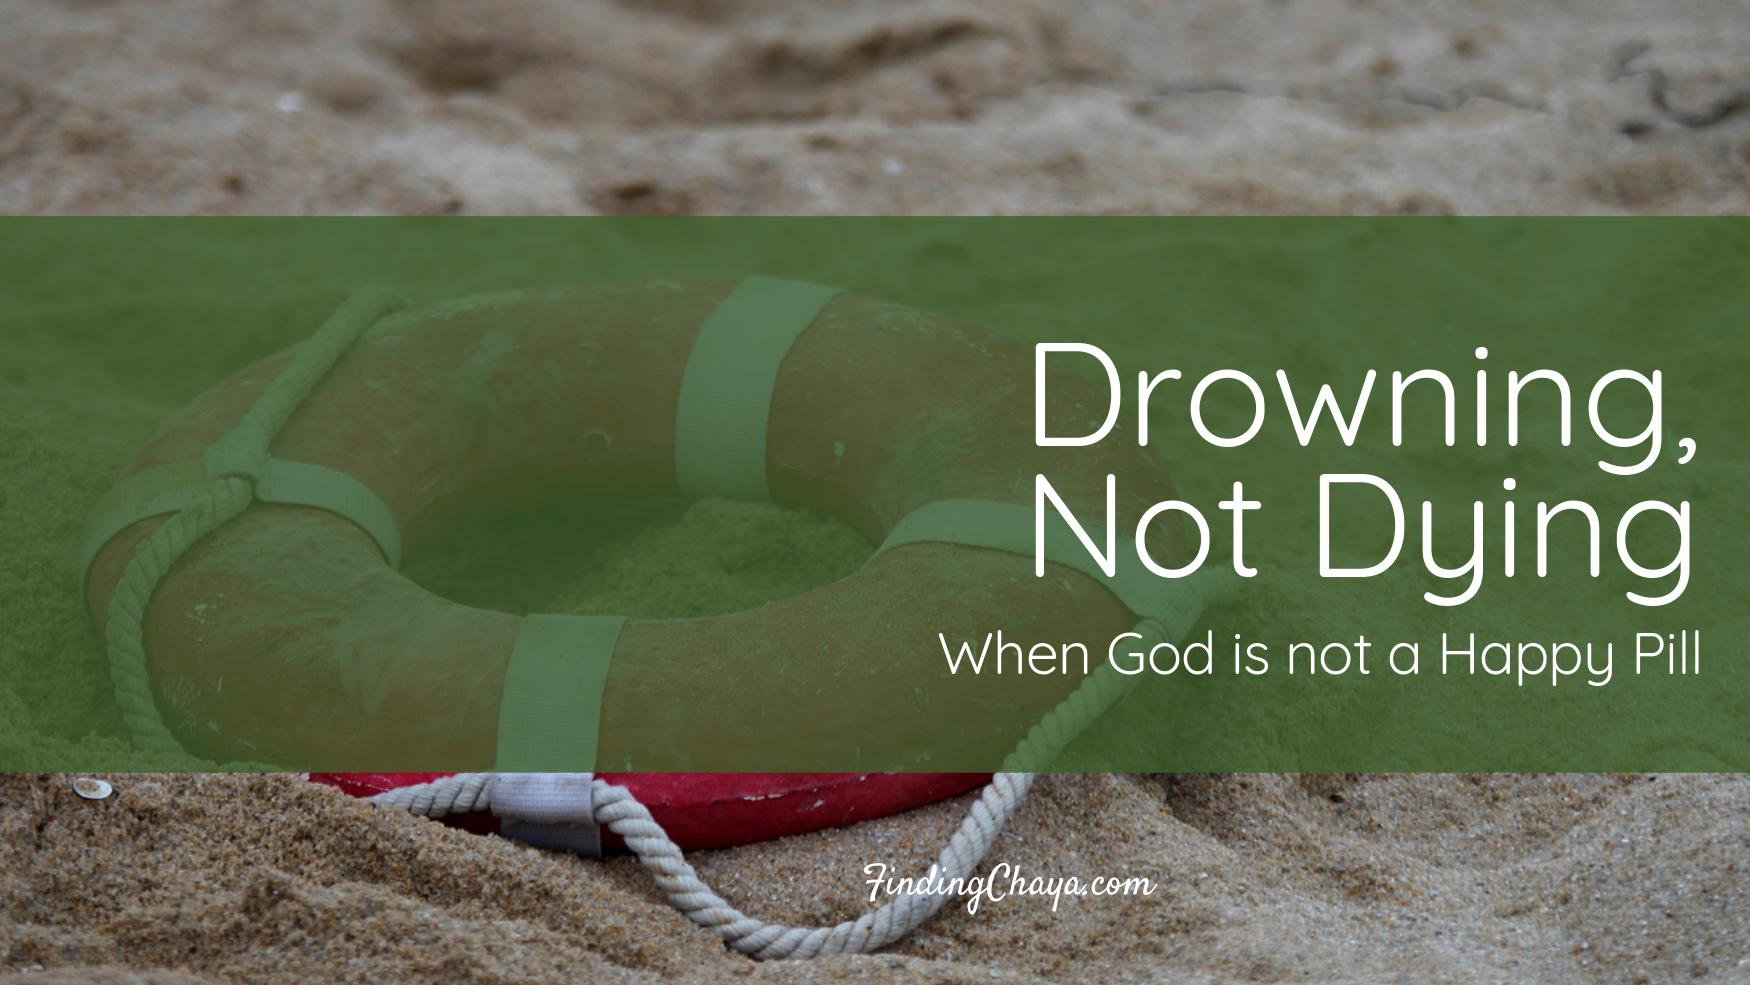 Drowning, Not Dying: When God is not a Happy Pill